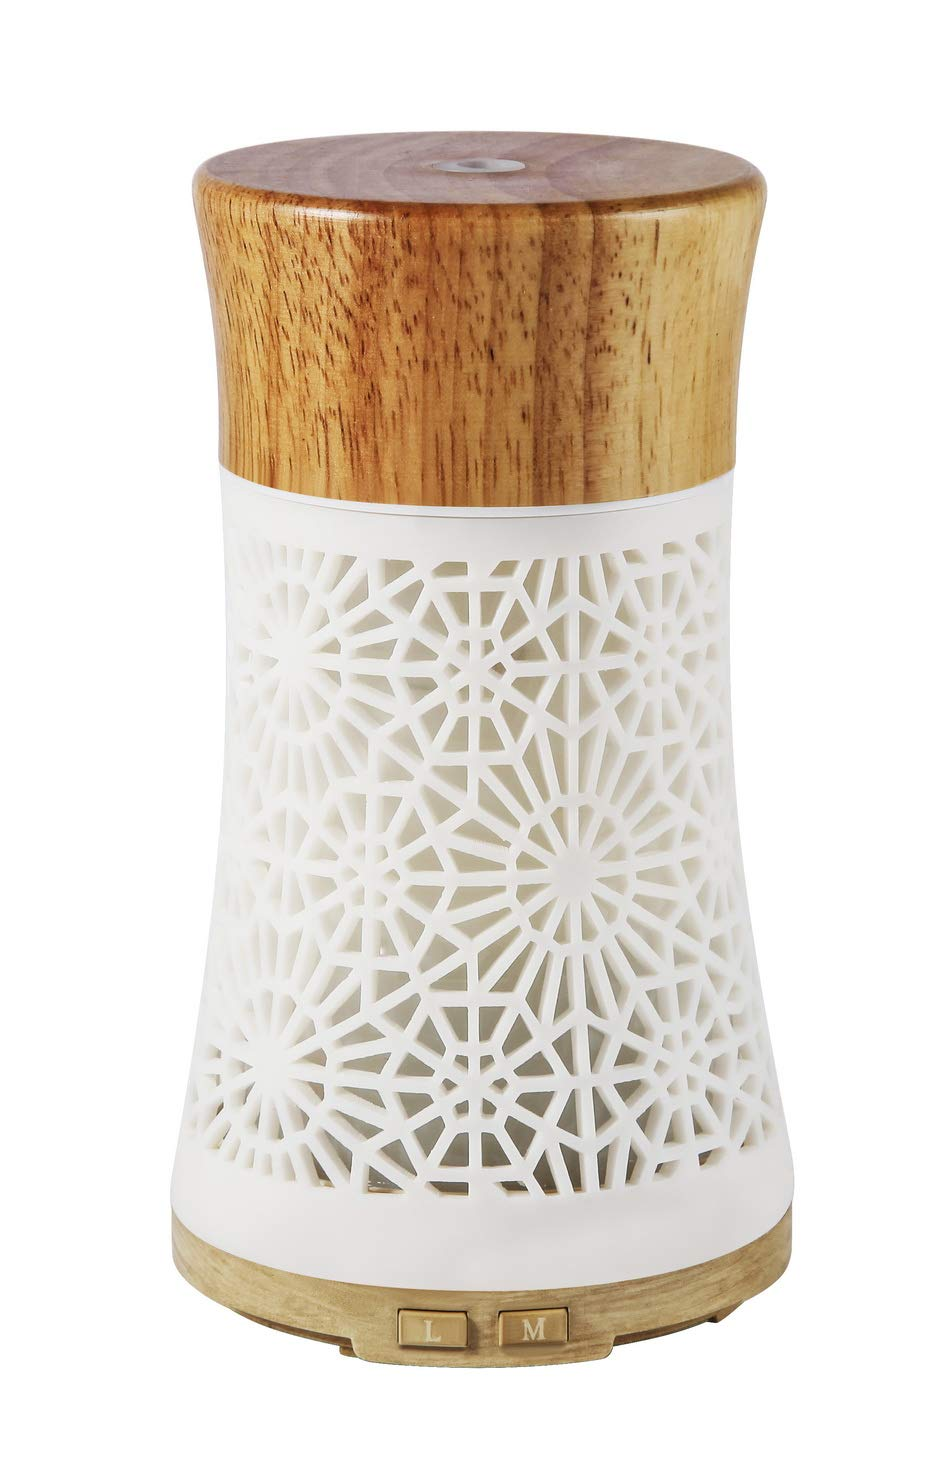 Anthun Essential Oil Diffusers,120ml Fragrant Room Sprays Ultrasonic Aroma Mist Atomizer BPA-Free, Waterless Auto-Off, 7 Color LED Lights for Office Home Bedroom Living Room Study Yoga Spa-Wooden Lid by Anthun